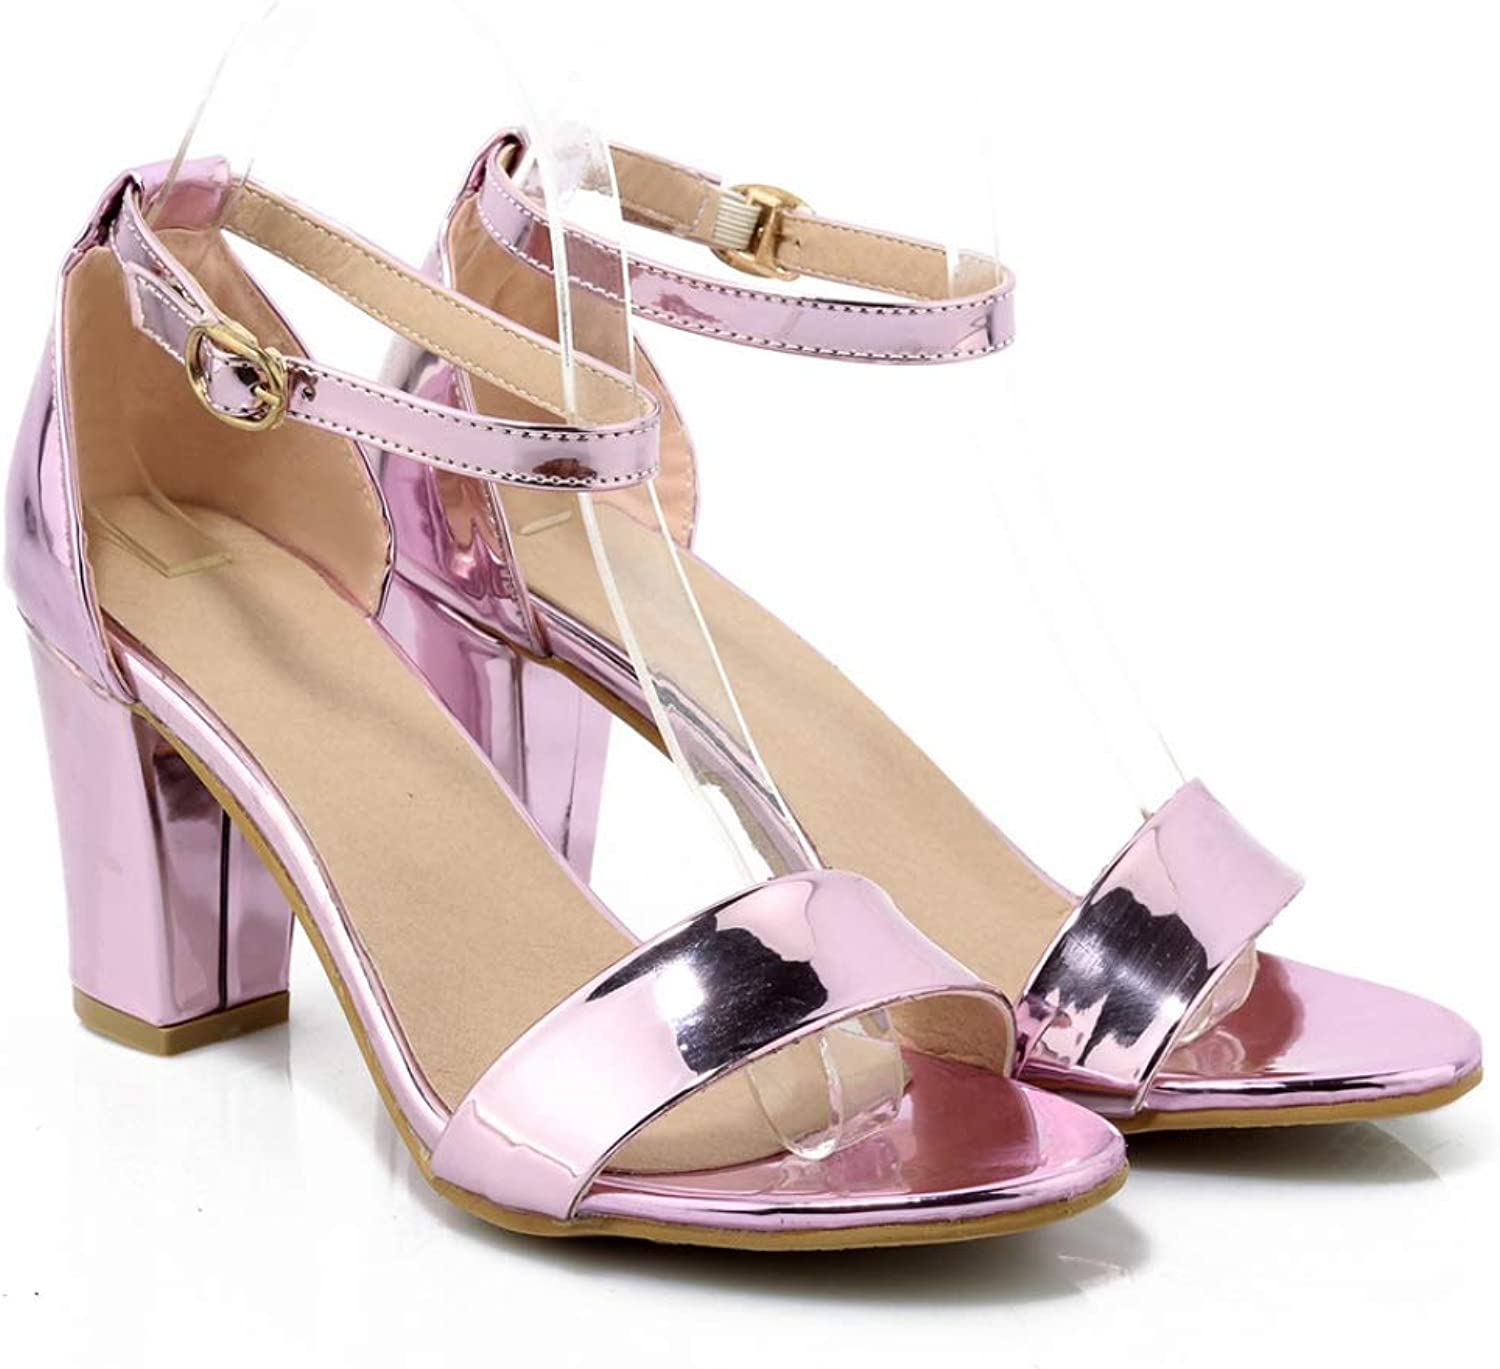 T-JULY Sandal for Women Summer Outside Mixed color Square High Heels Fadshion Ladies Dress Party shoes